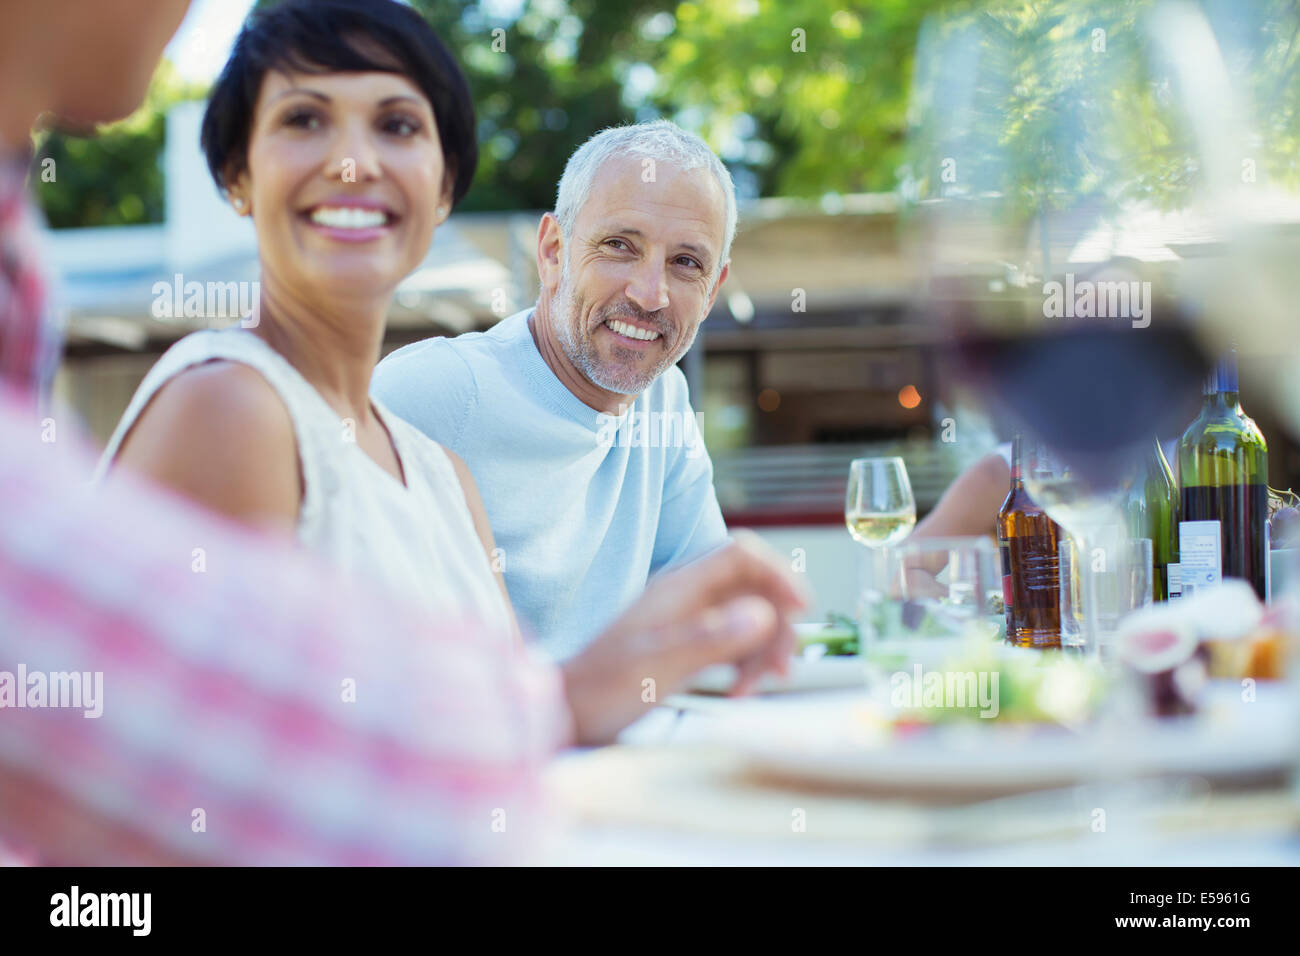 Couple smiling at table outdoors Photo Stock